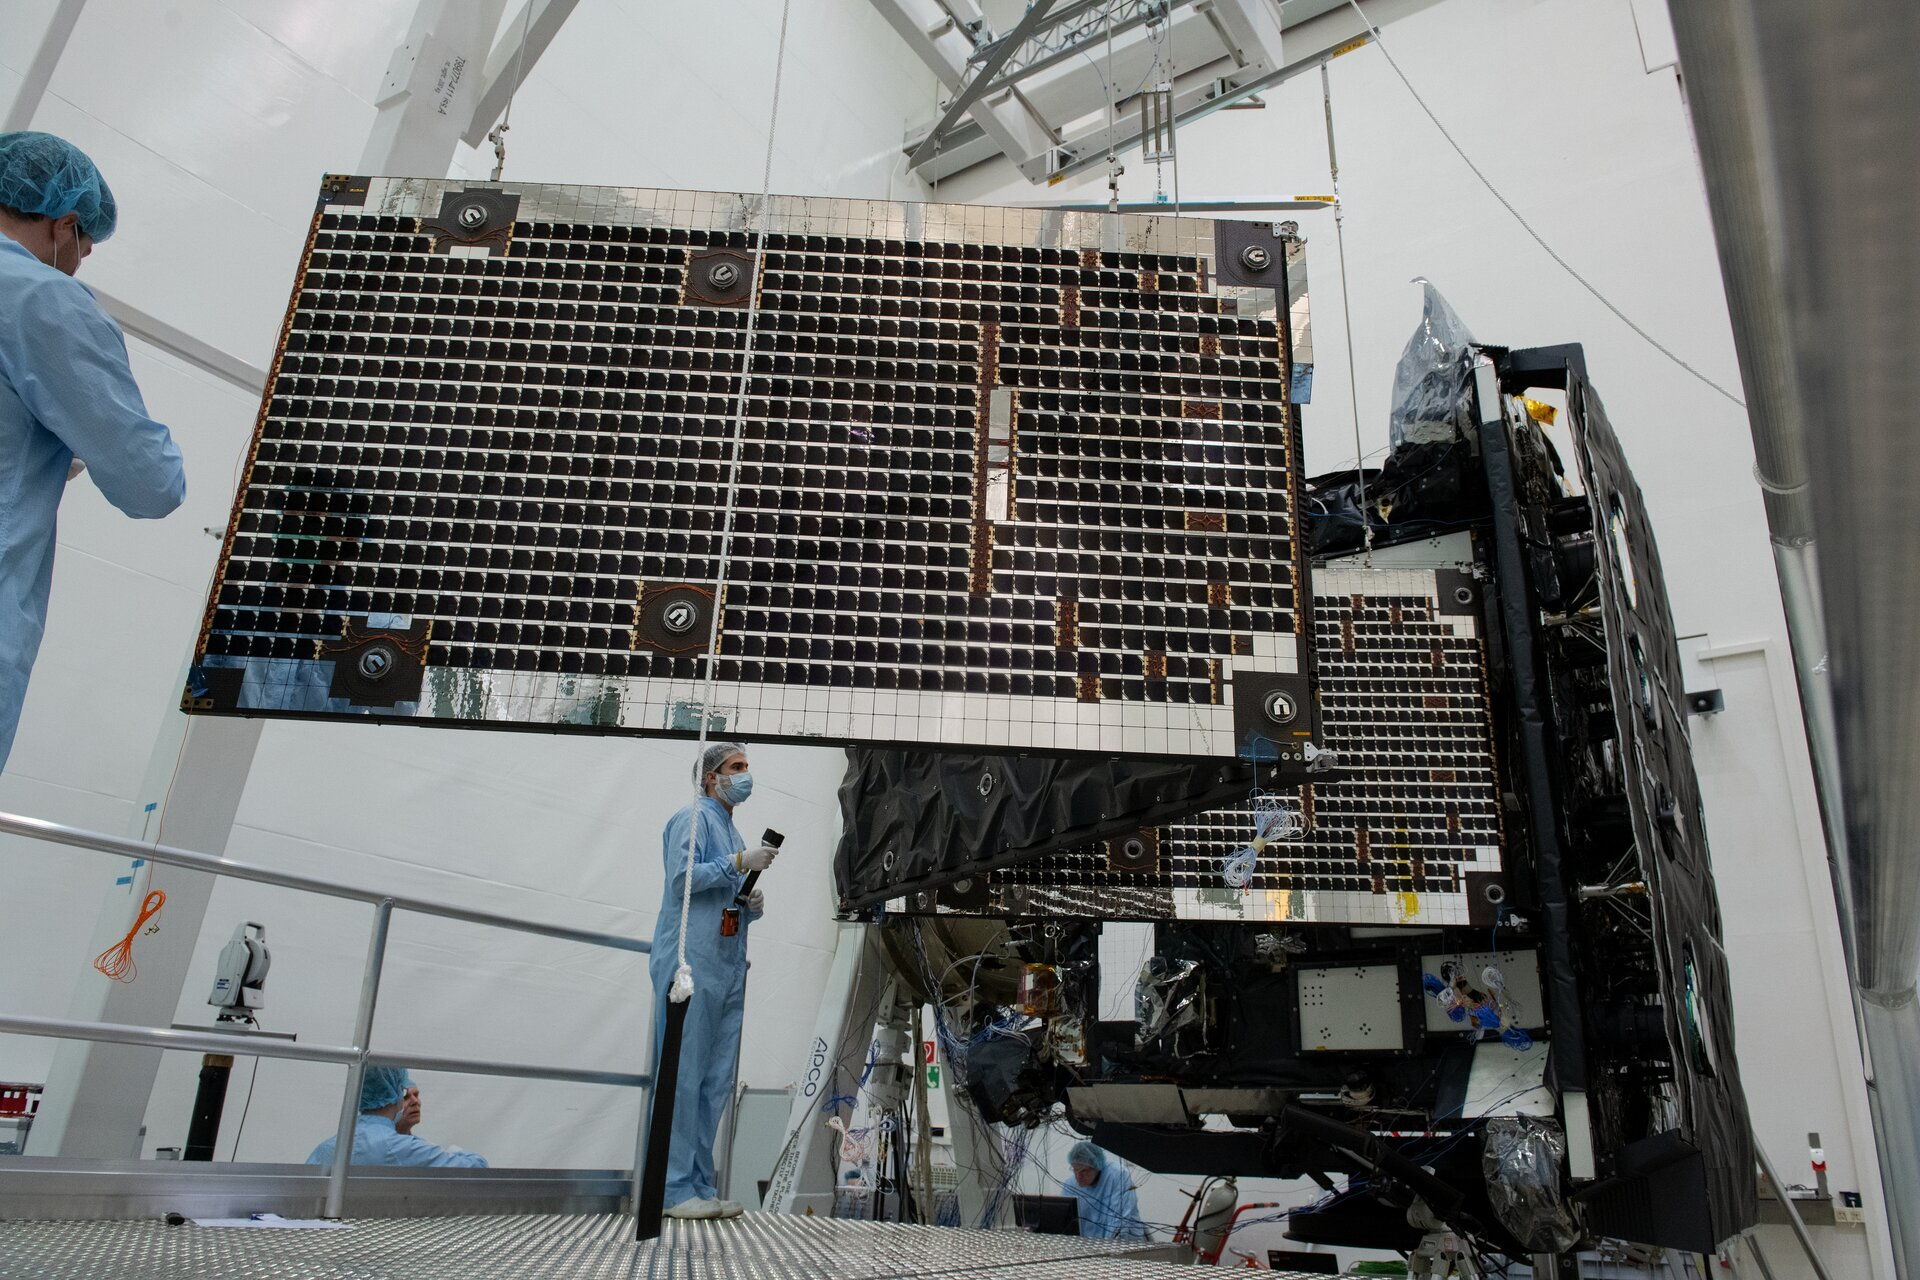 Solar Orbiter array deployment test